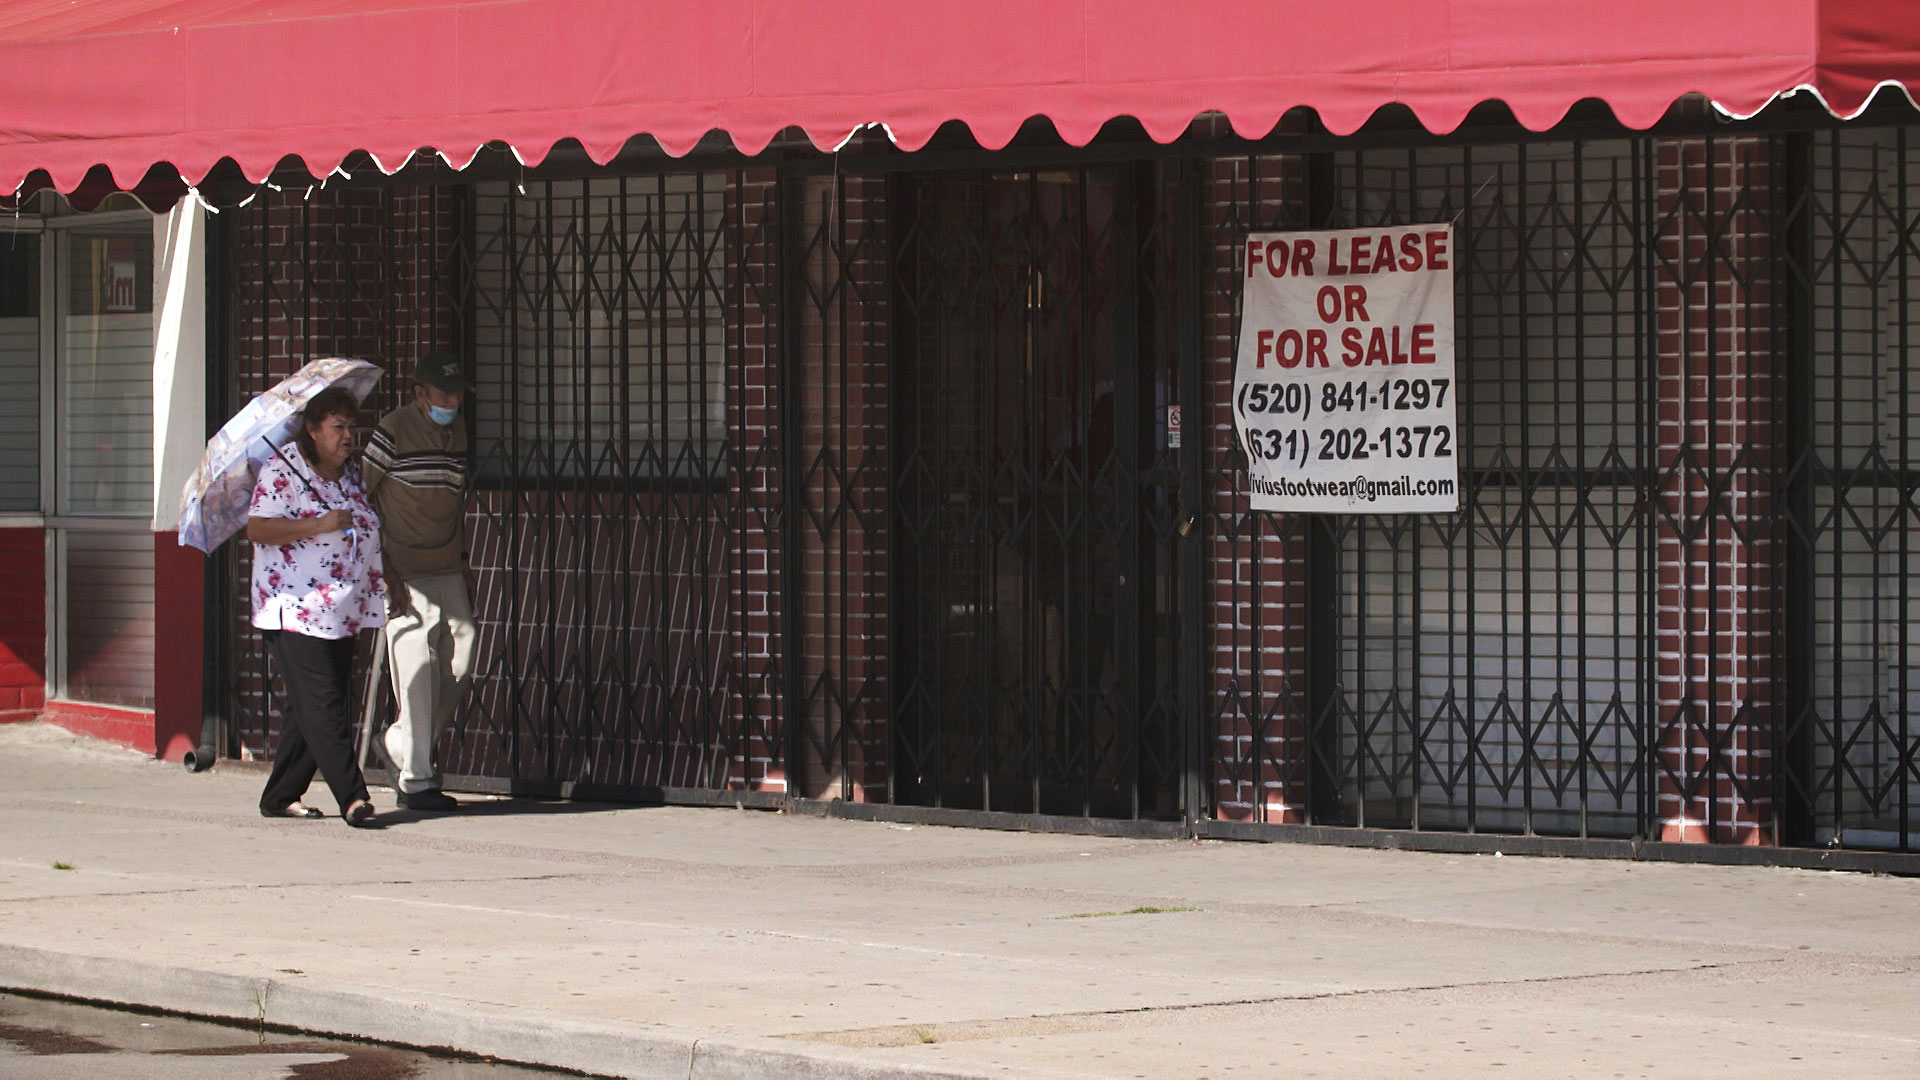 A man and woman walk past a closed building listed for sale in Nogales, Arizona on August 17, 2020.